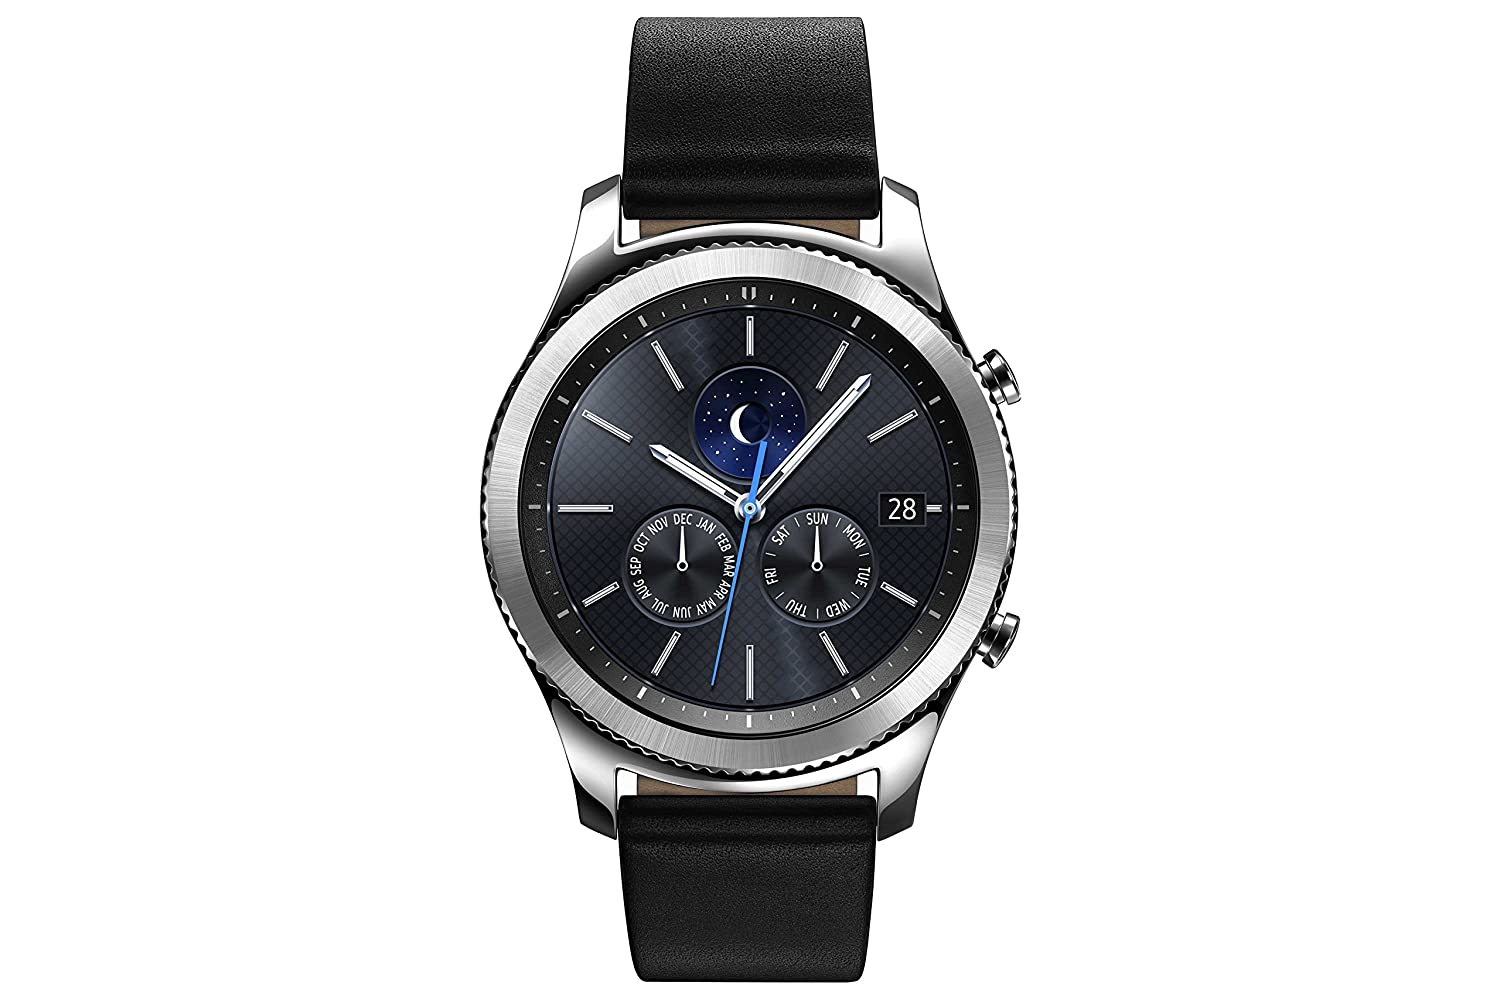 Samsung Gear S3 Smartwatch amazon